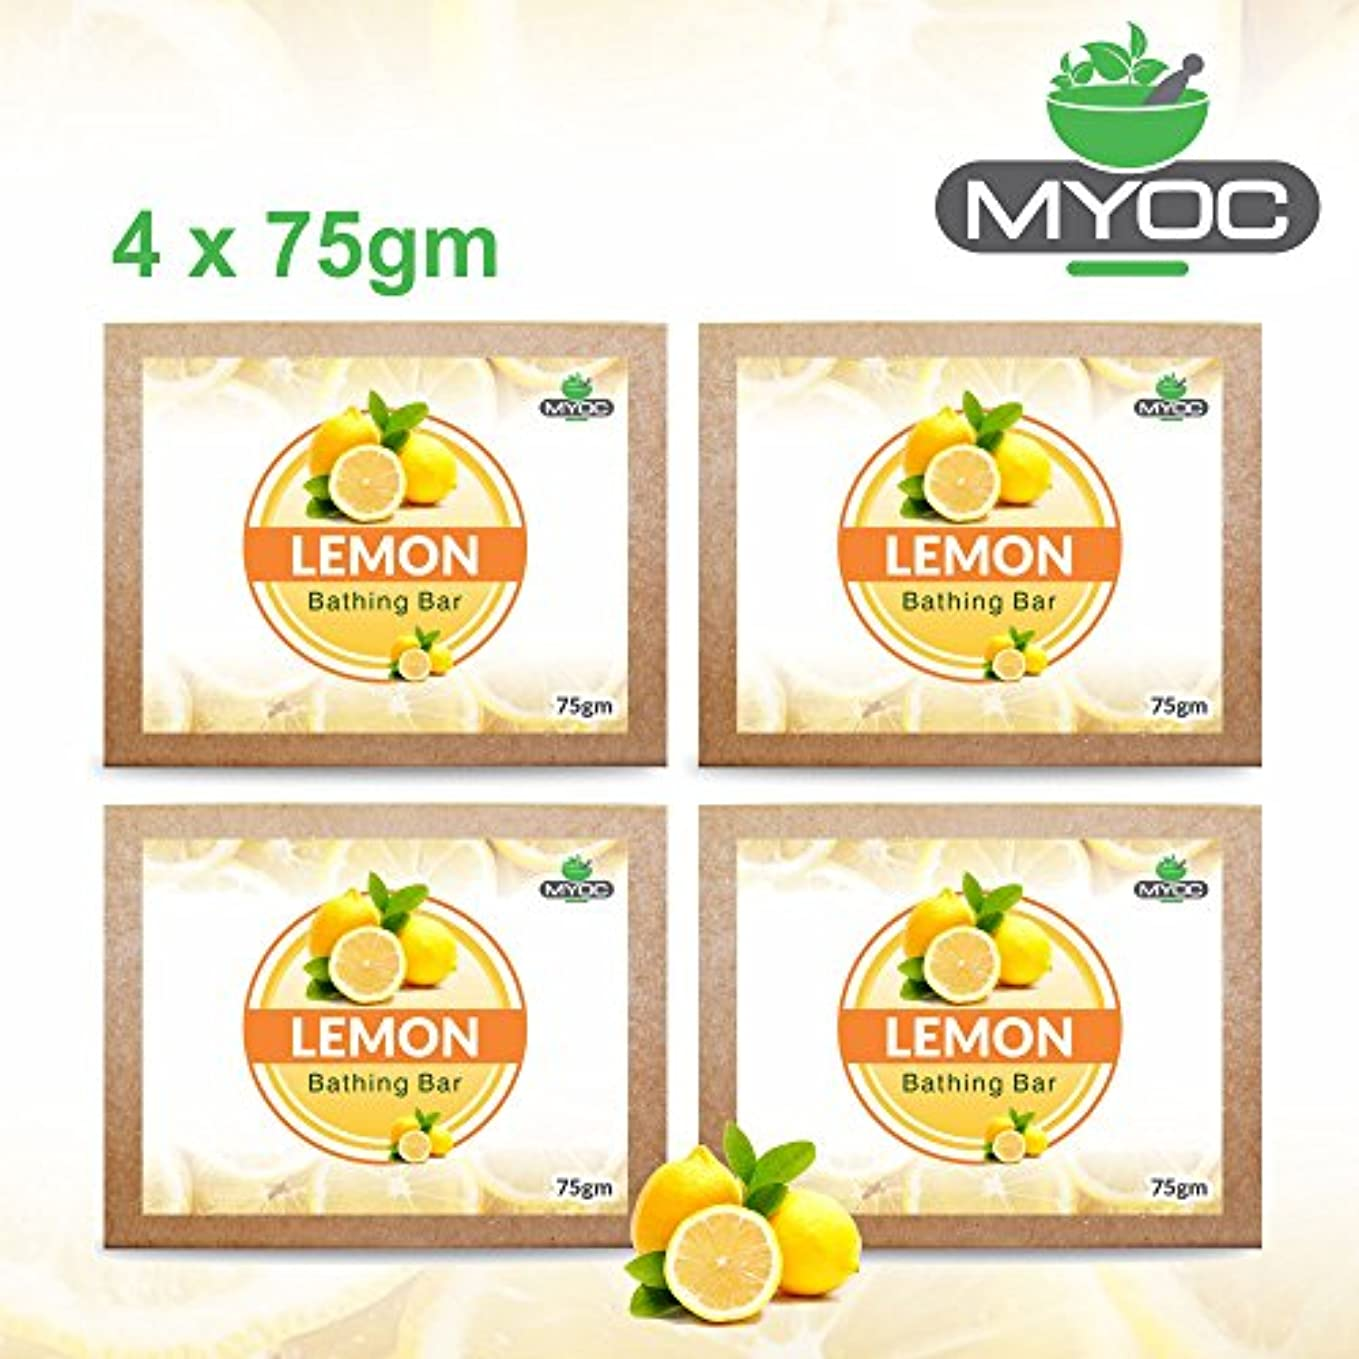 弾薬奨学金ほとんどの場合Lemon Oil And Vitamin E Astringent Soap, deodorant, antiseptic soap for clogged pores and acne prone skin 75g...